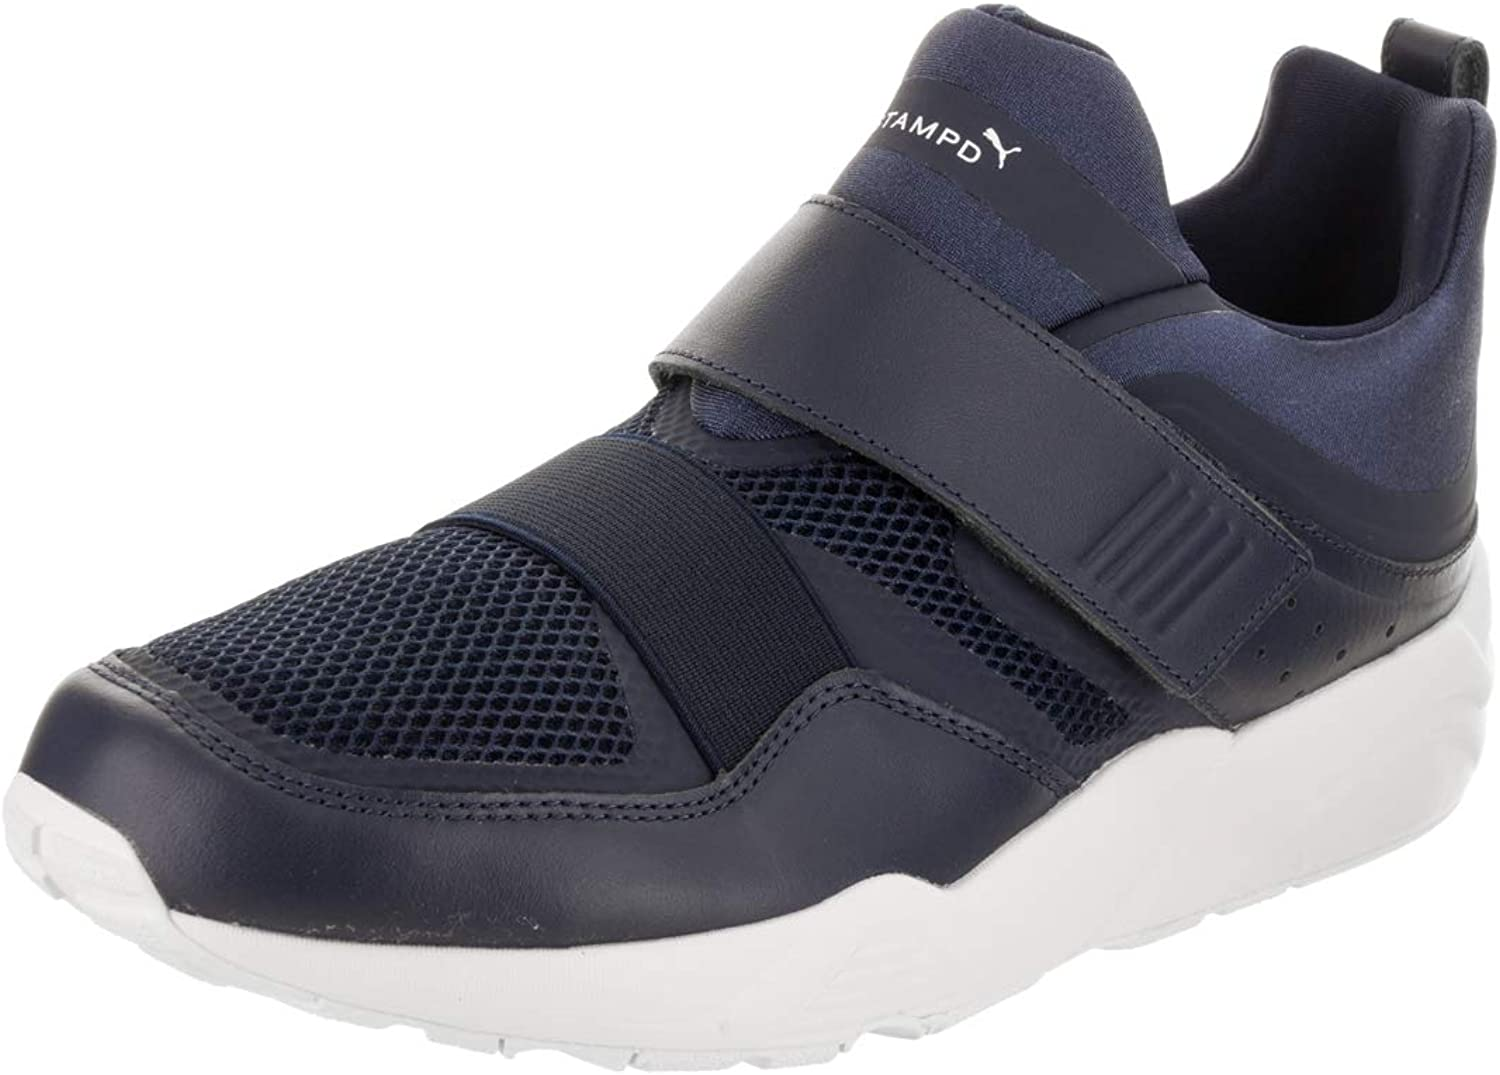 Puma Men's Blaze of Glory Strap X Stampd Casual shoes